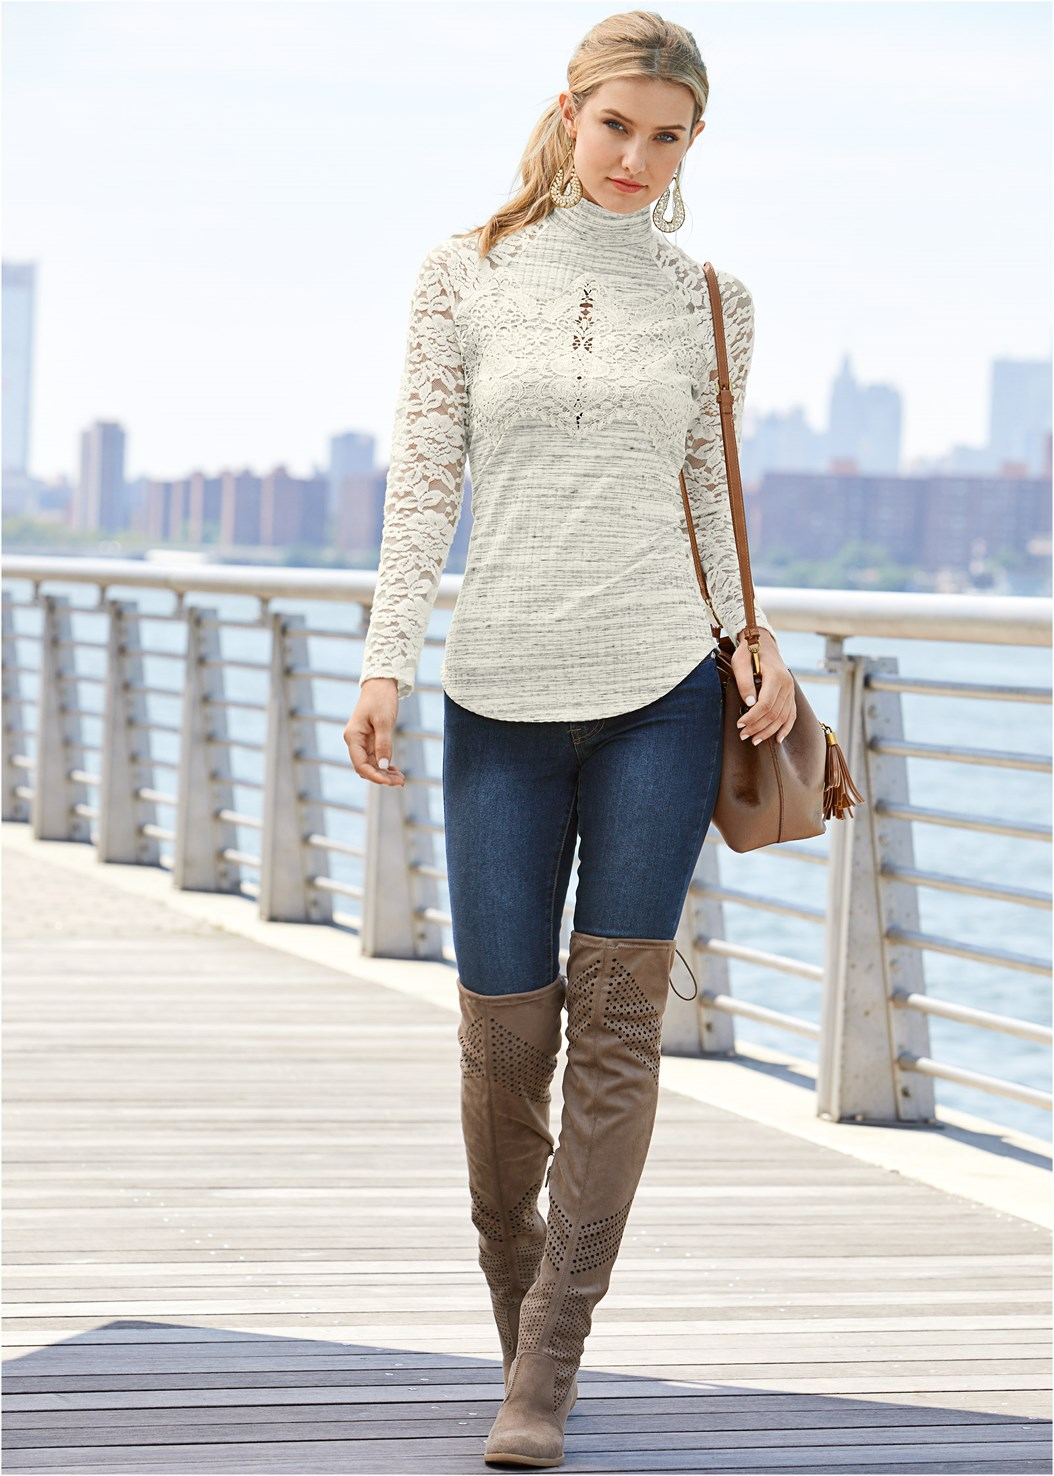 Lace Detail Mock Neck Top,Color Skinny Jeans,Bra With A Heart,Wrap Stitch Detail Booties,Beaded Drop Earrings